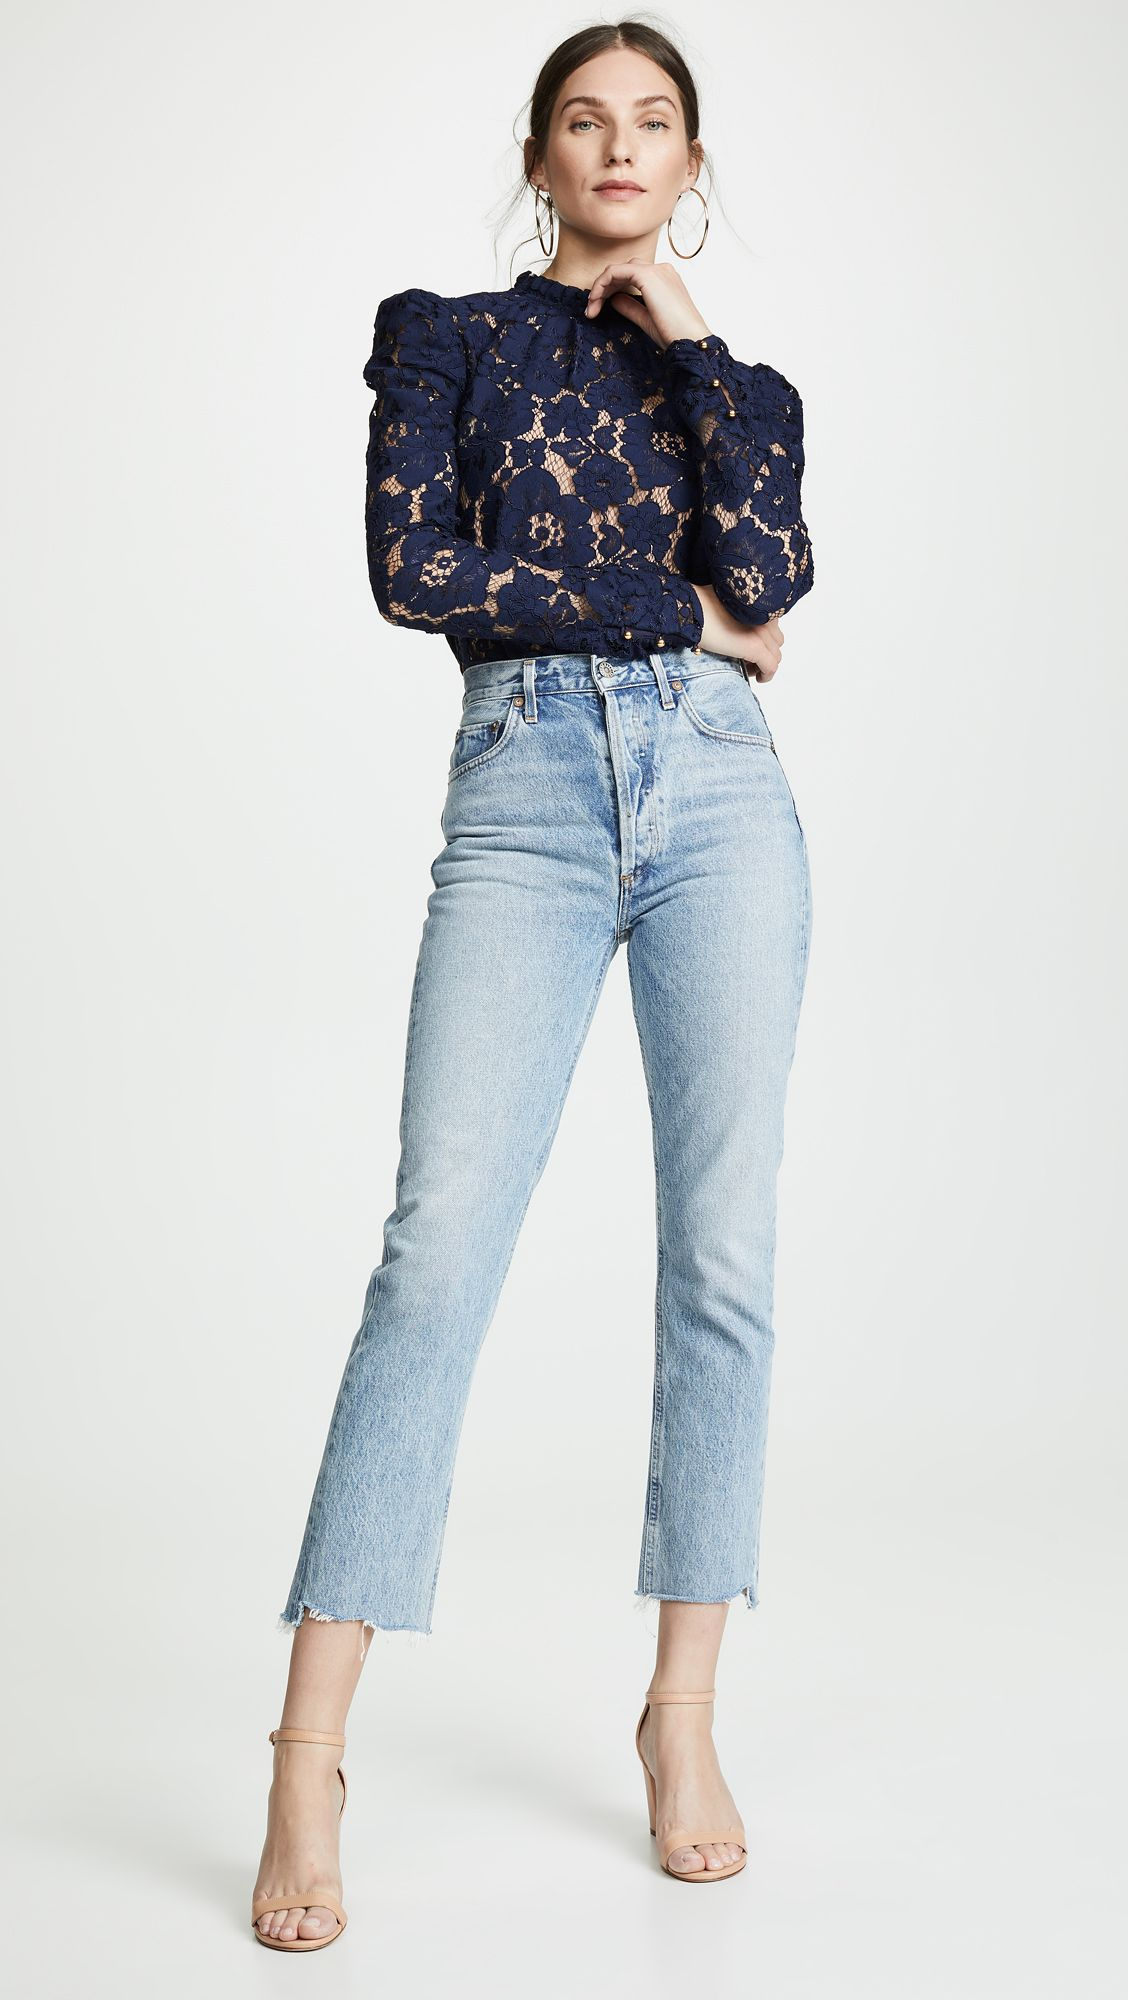 2975b6b9e1fafb Emma Puff Sleeve Lace Top | outfit ideas I just my style in 2019 ...